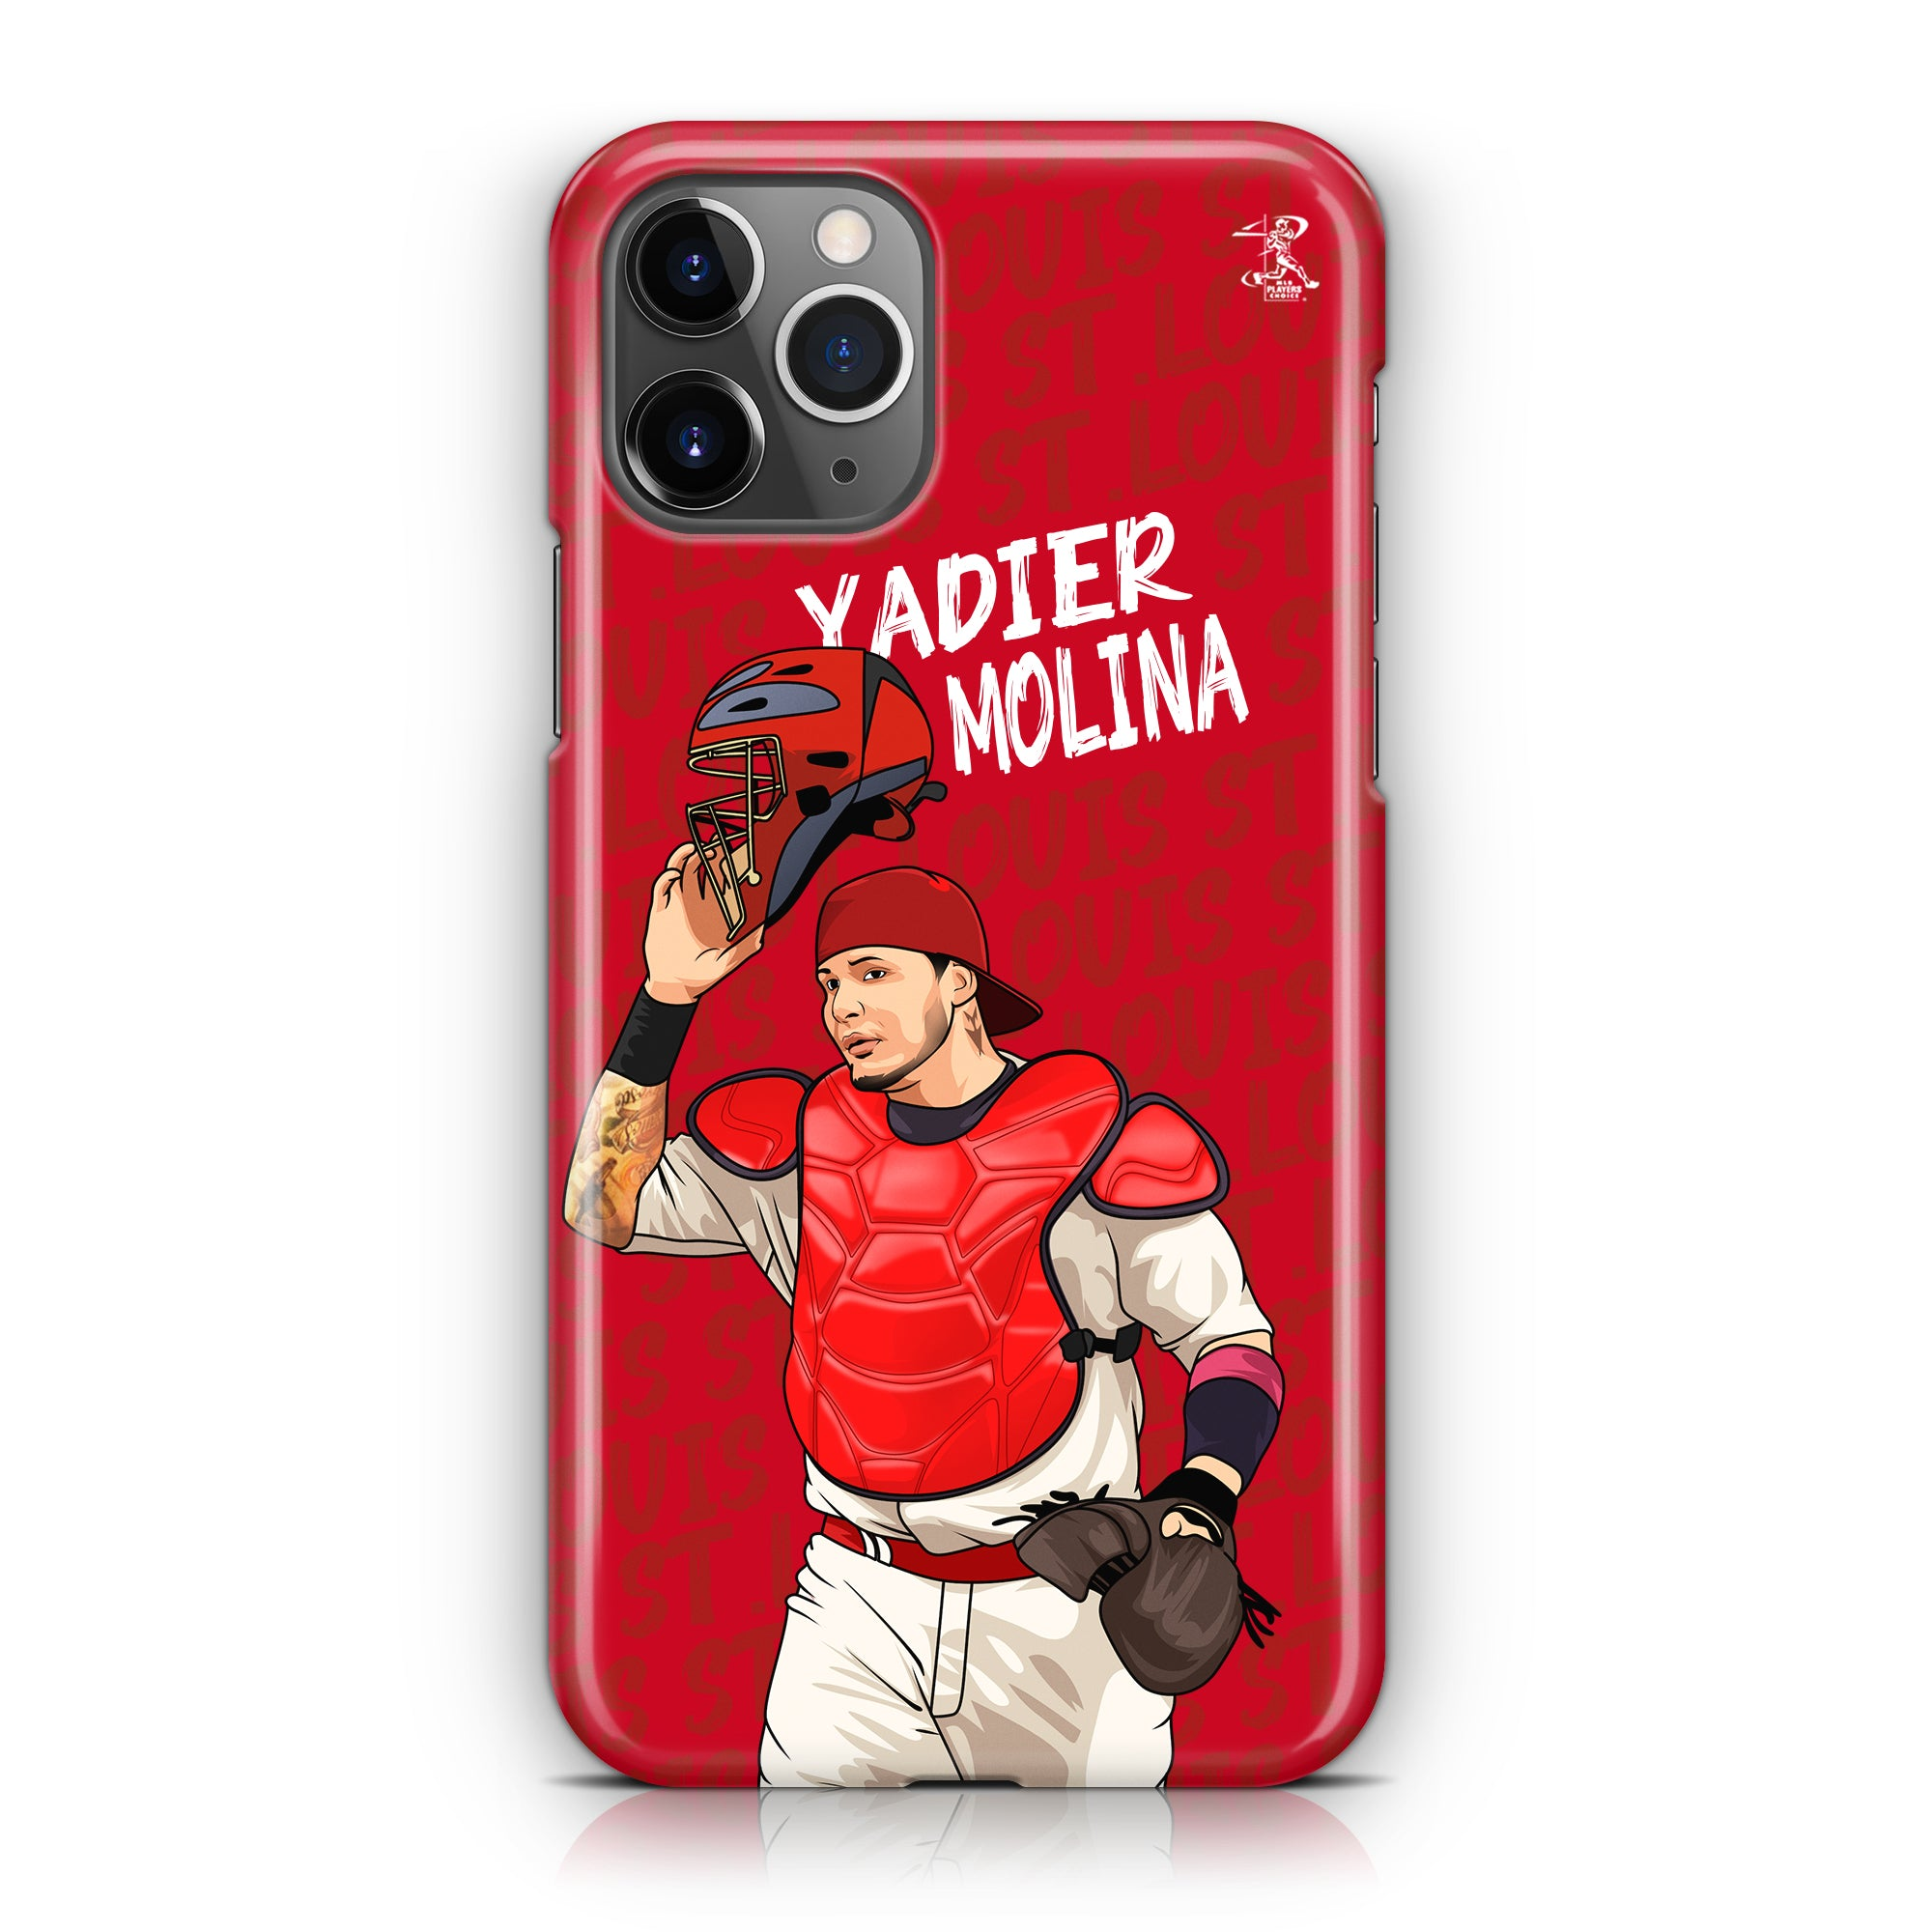 Molina Star Series 2.0 Case